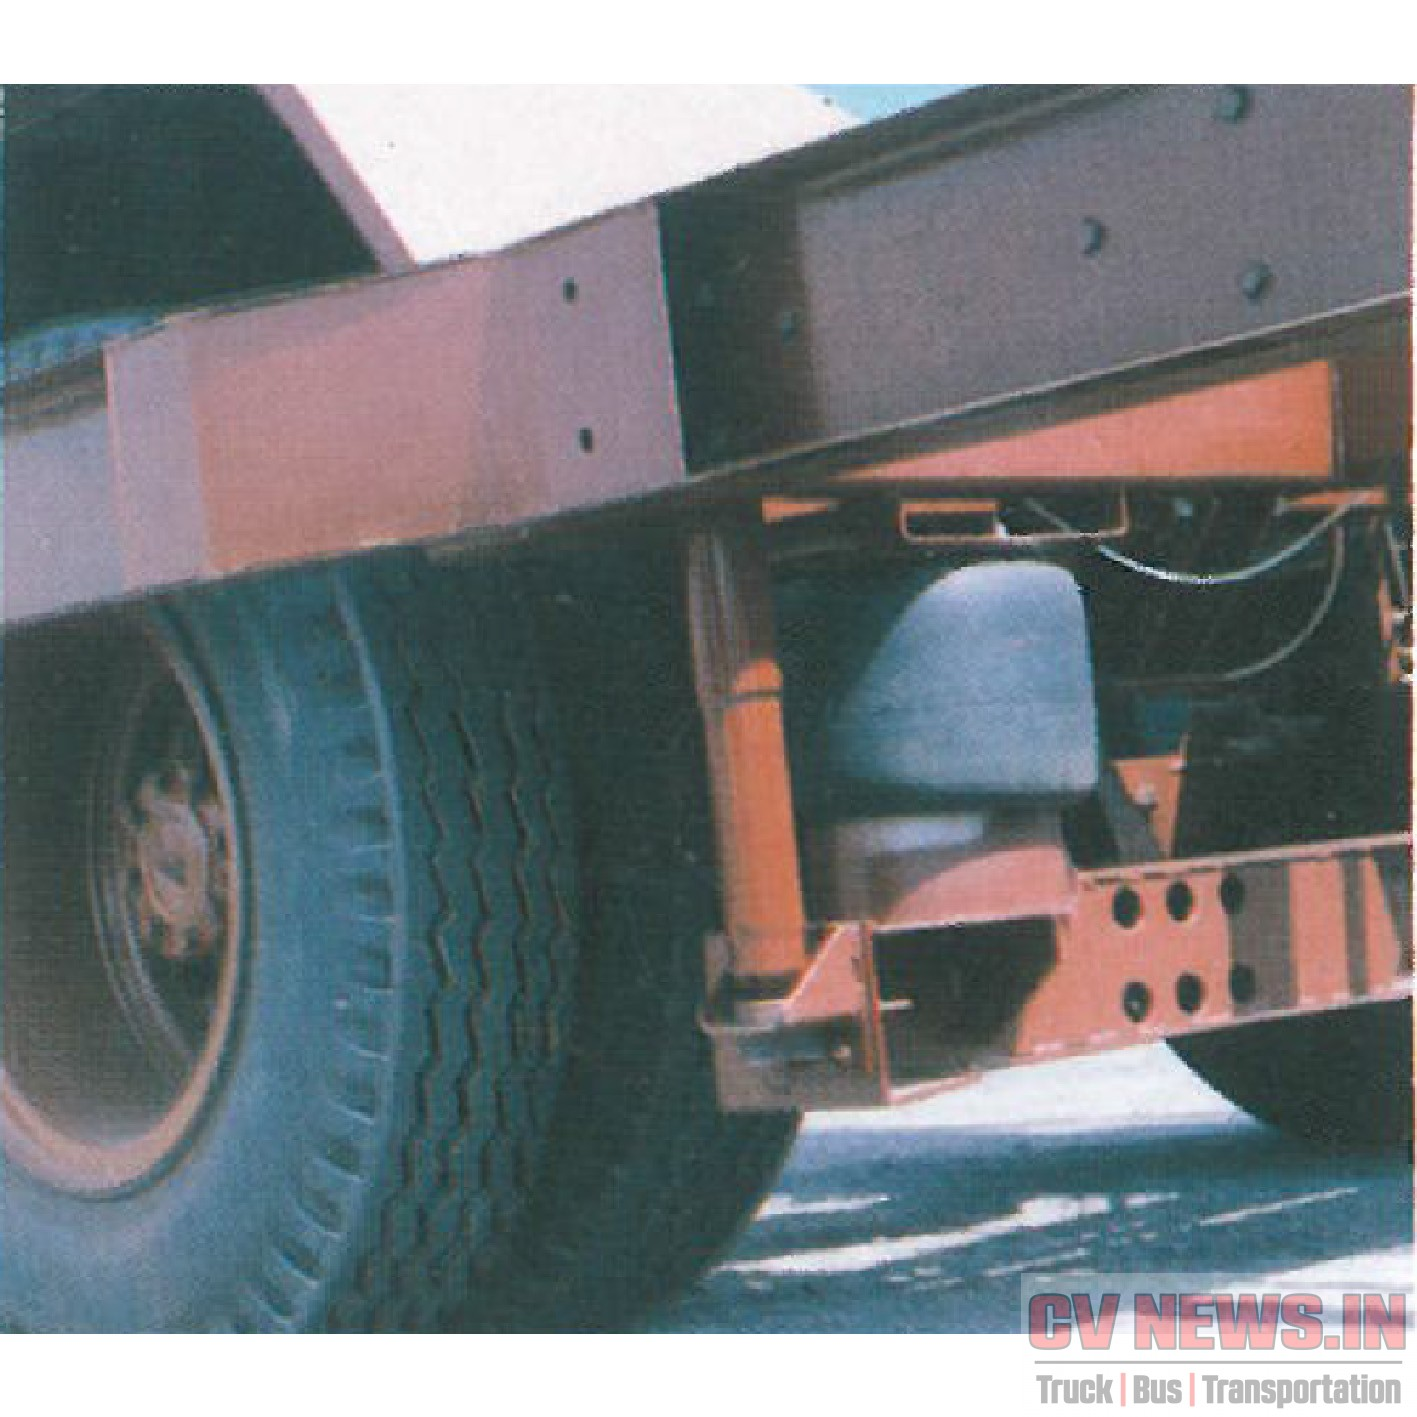 Ashok Leyland Leapard rear air suspension